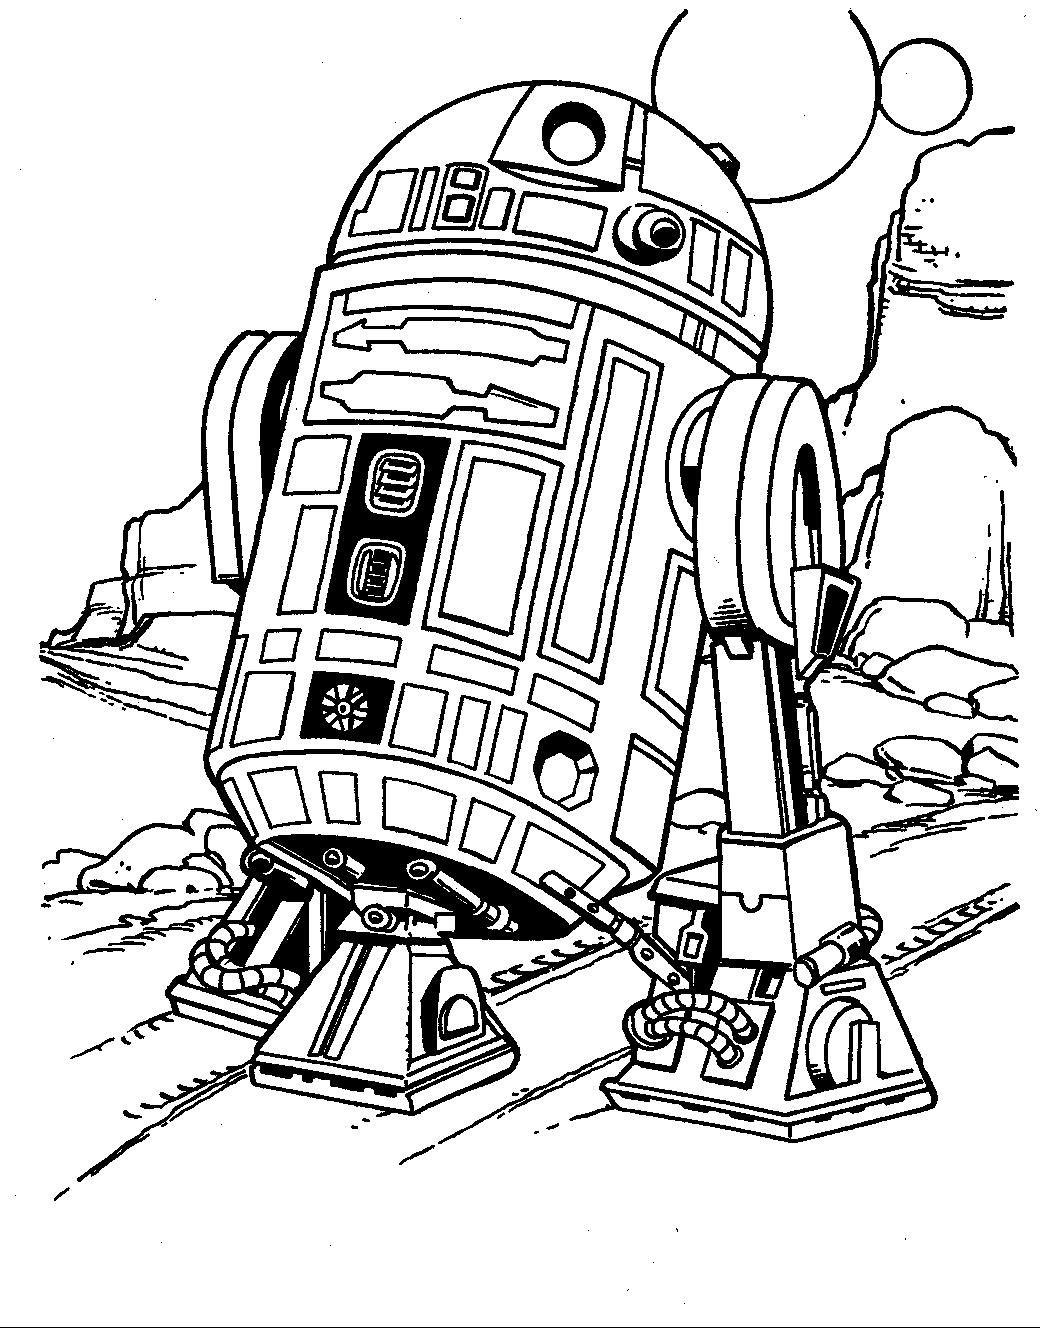 Hundreds Of Free Coloring Pages the Boys Pinterest Printable Of New Coloring Pages Star Wars Printable